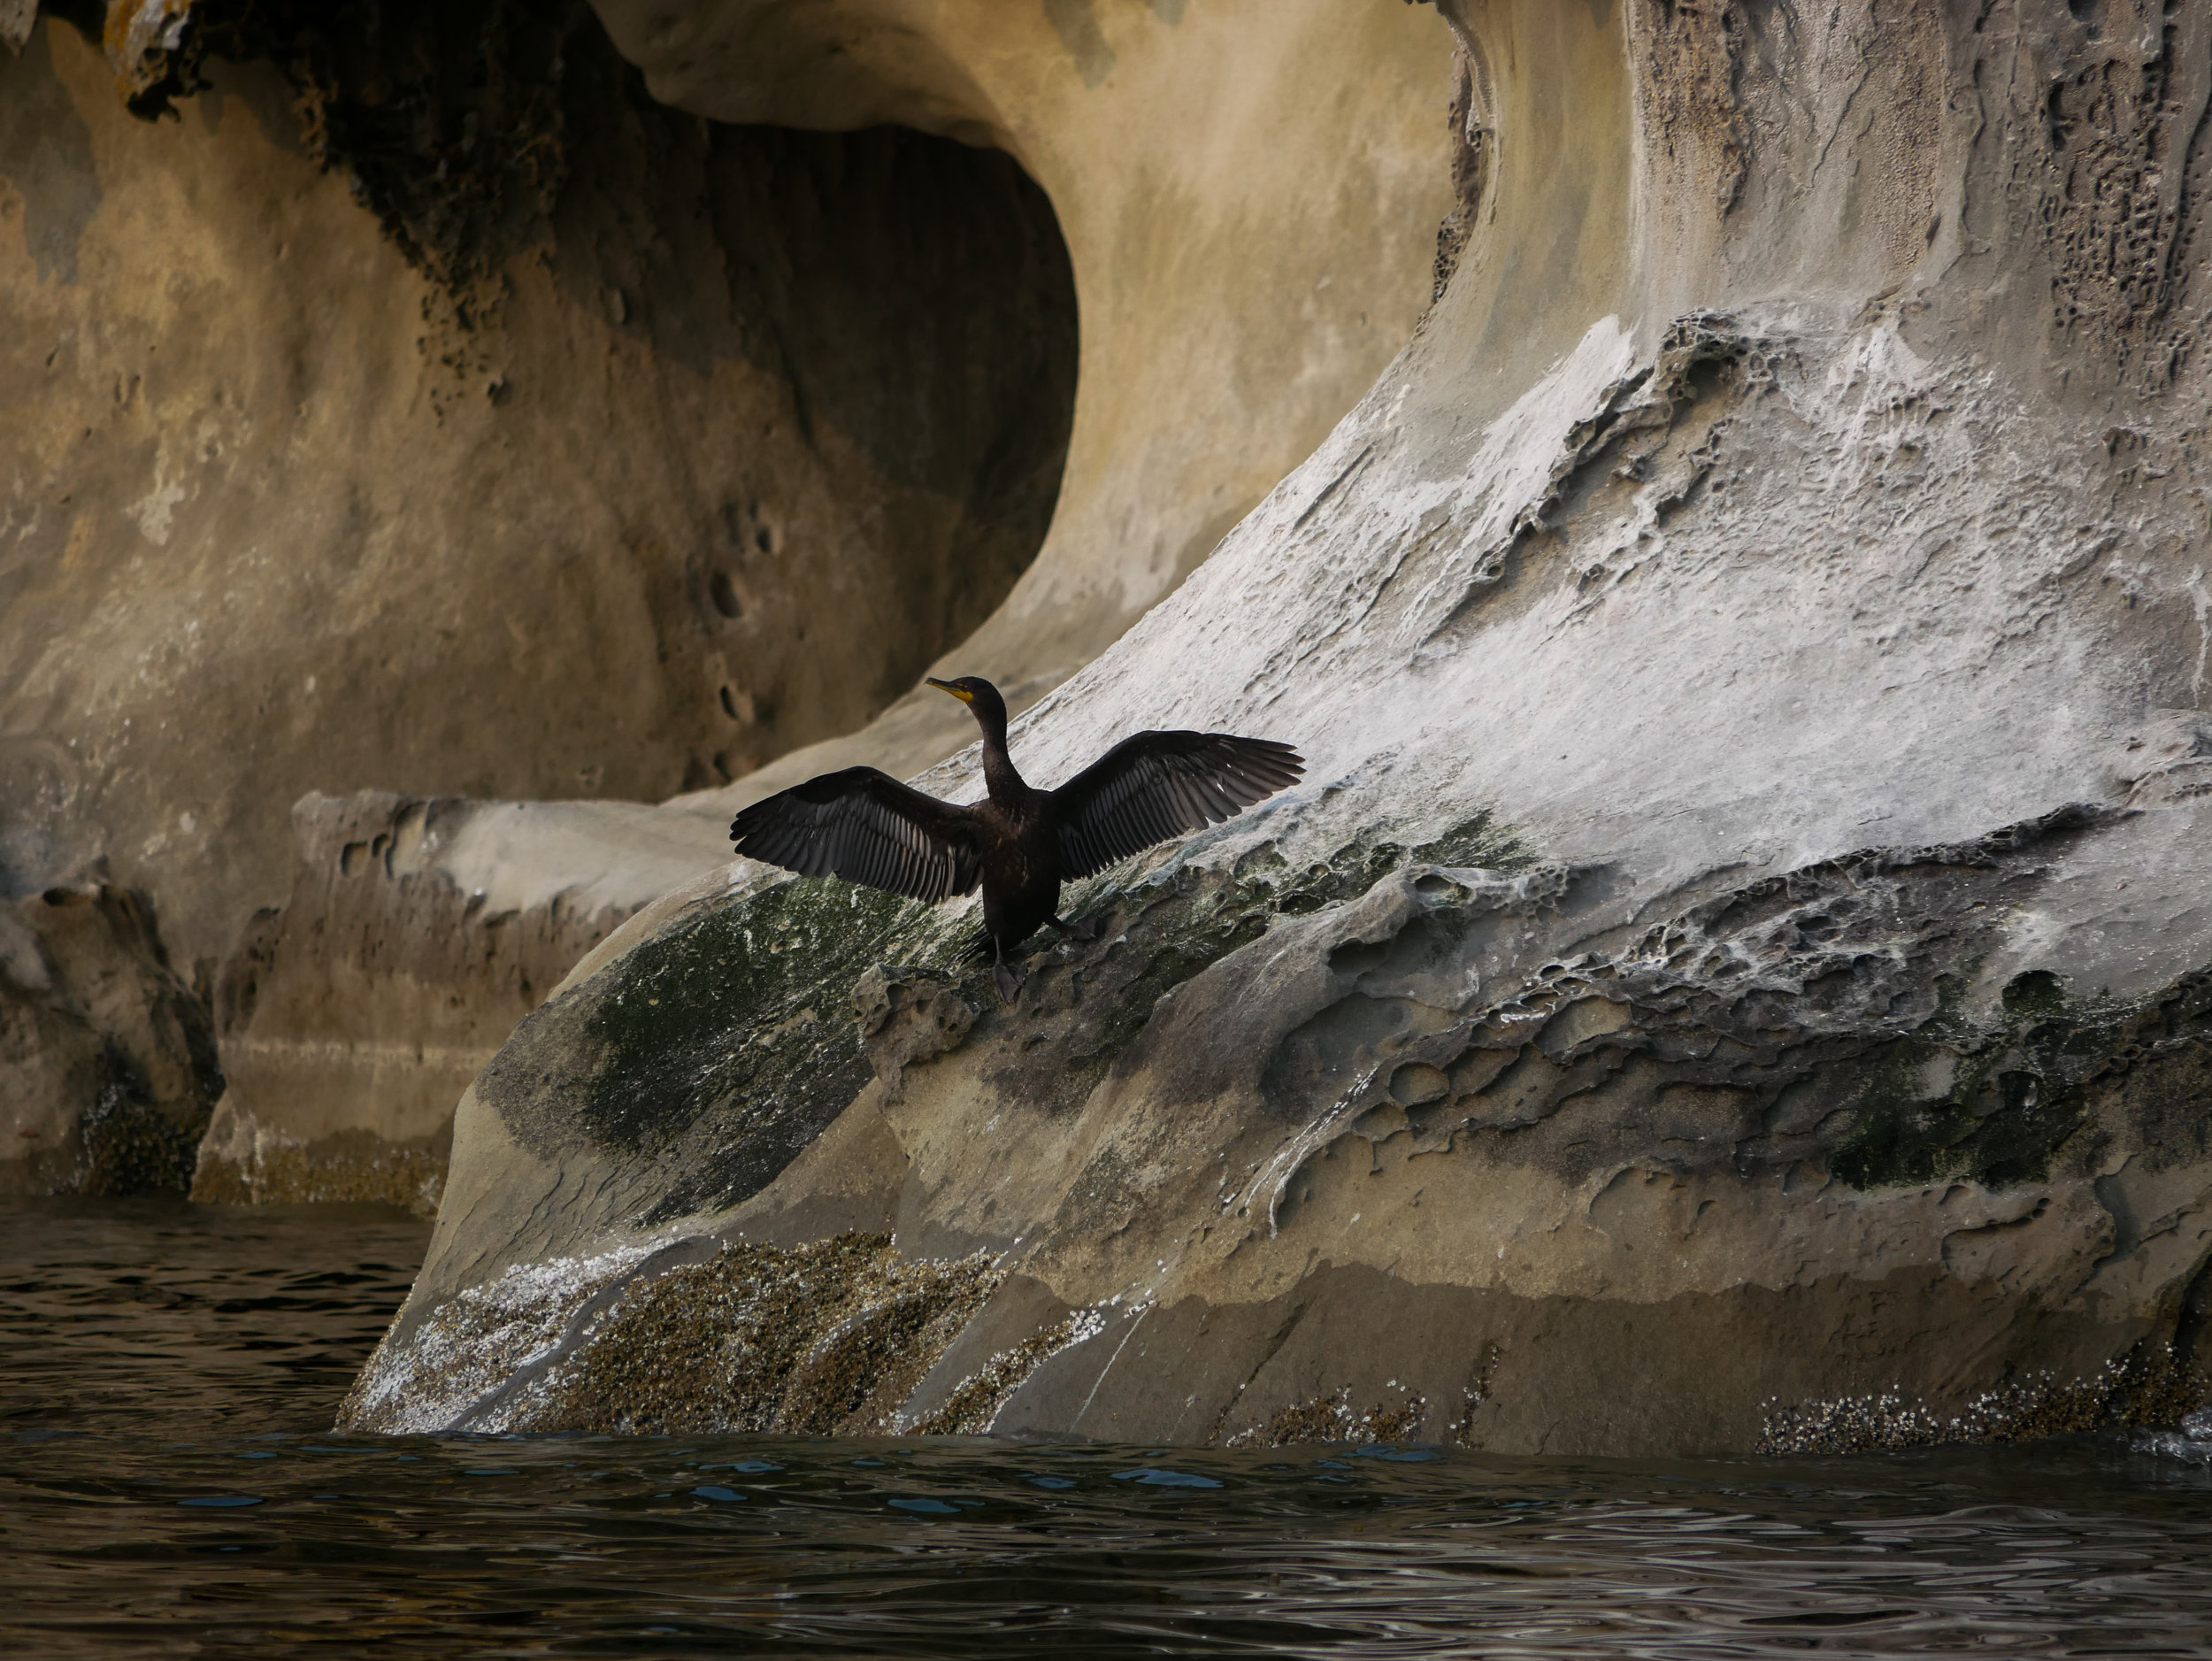 A cormorant drying out its wings after a deep dive! Photo by Alanna Vivani